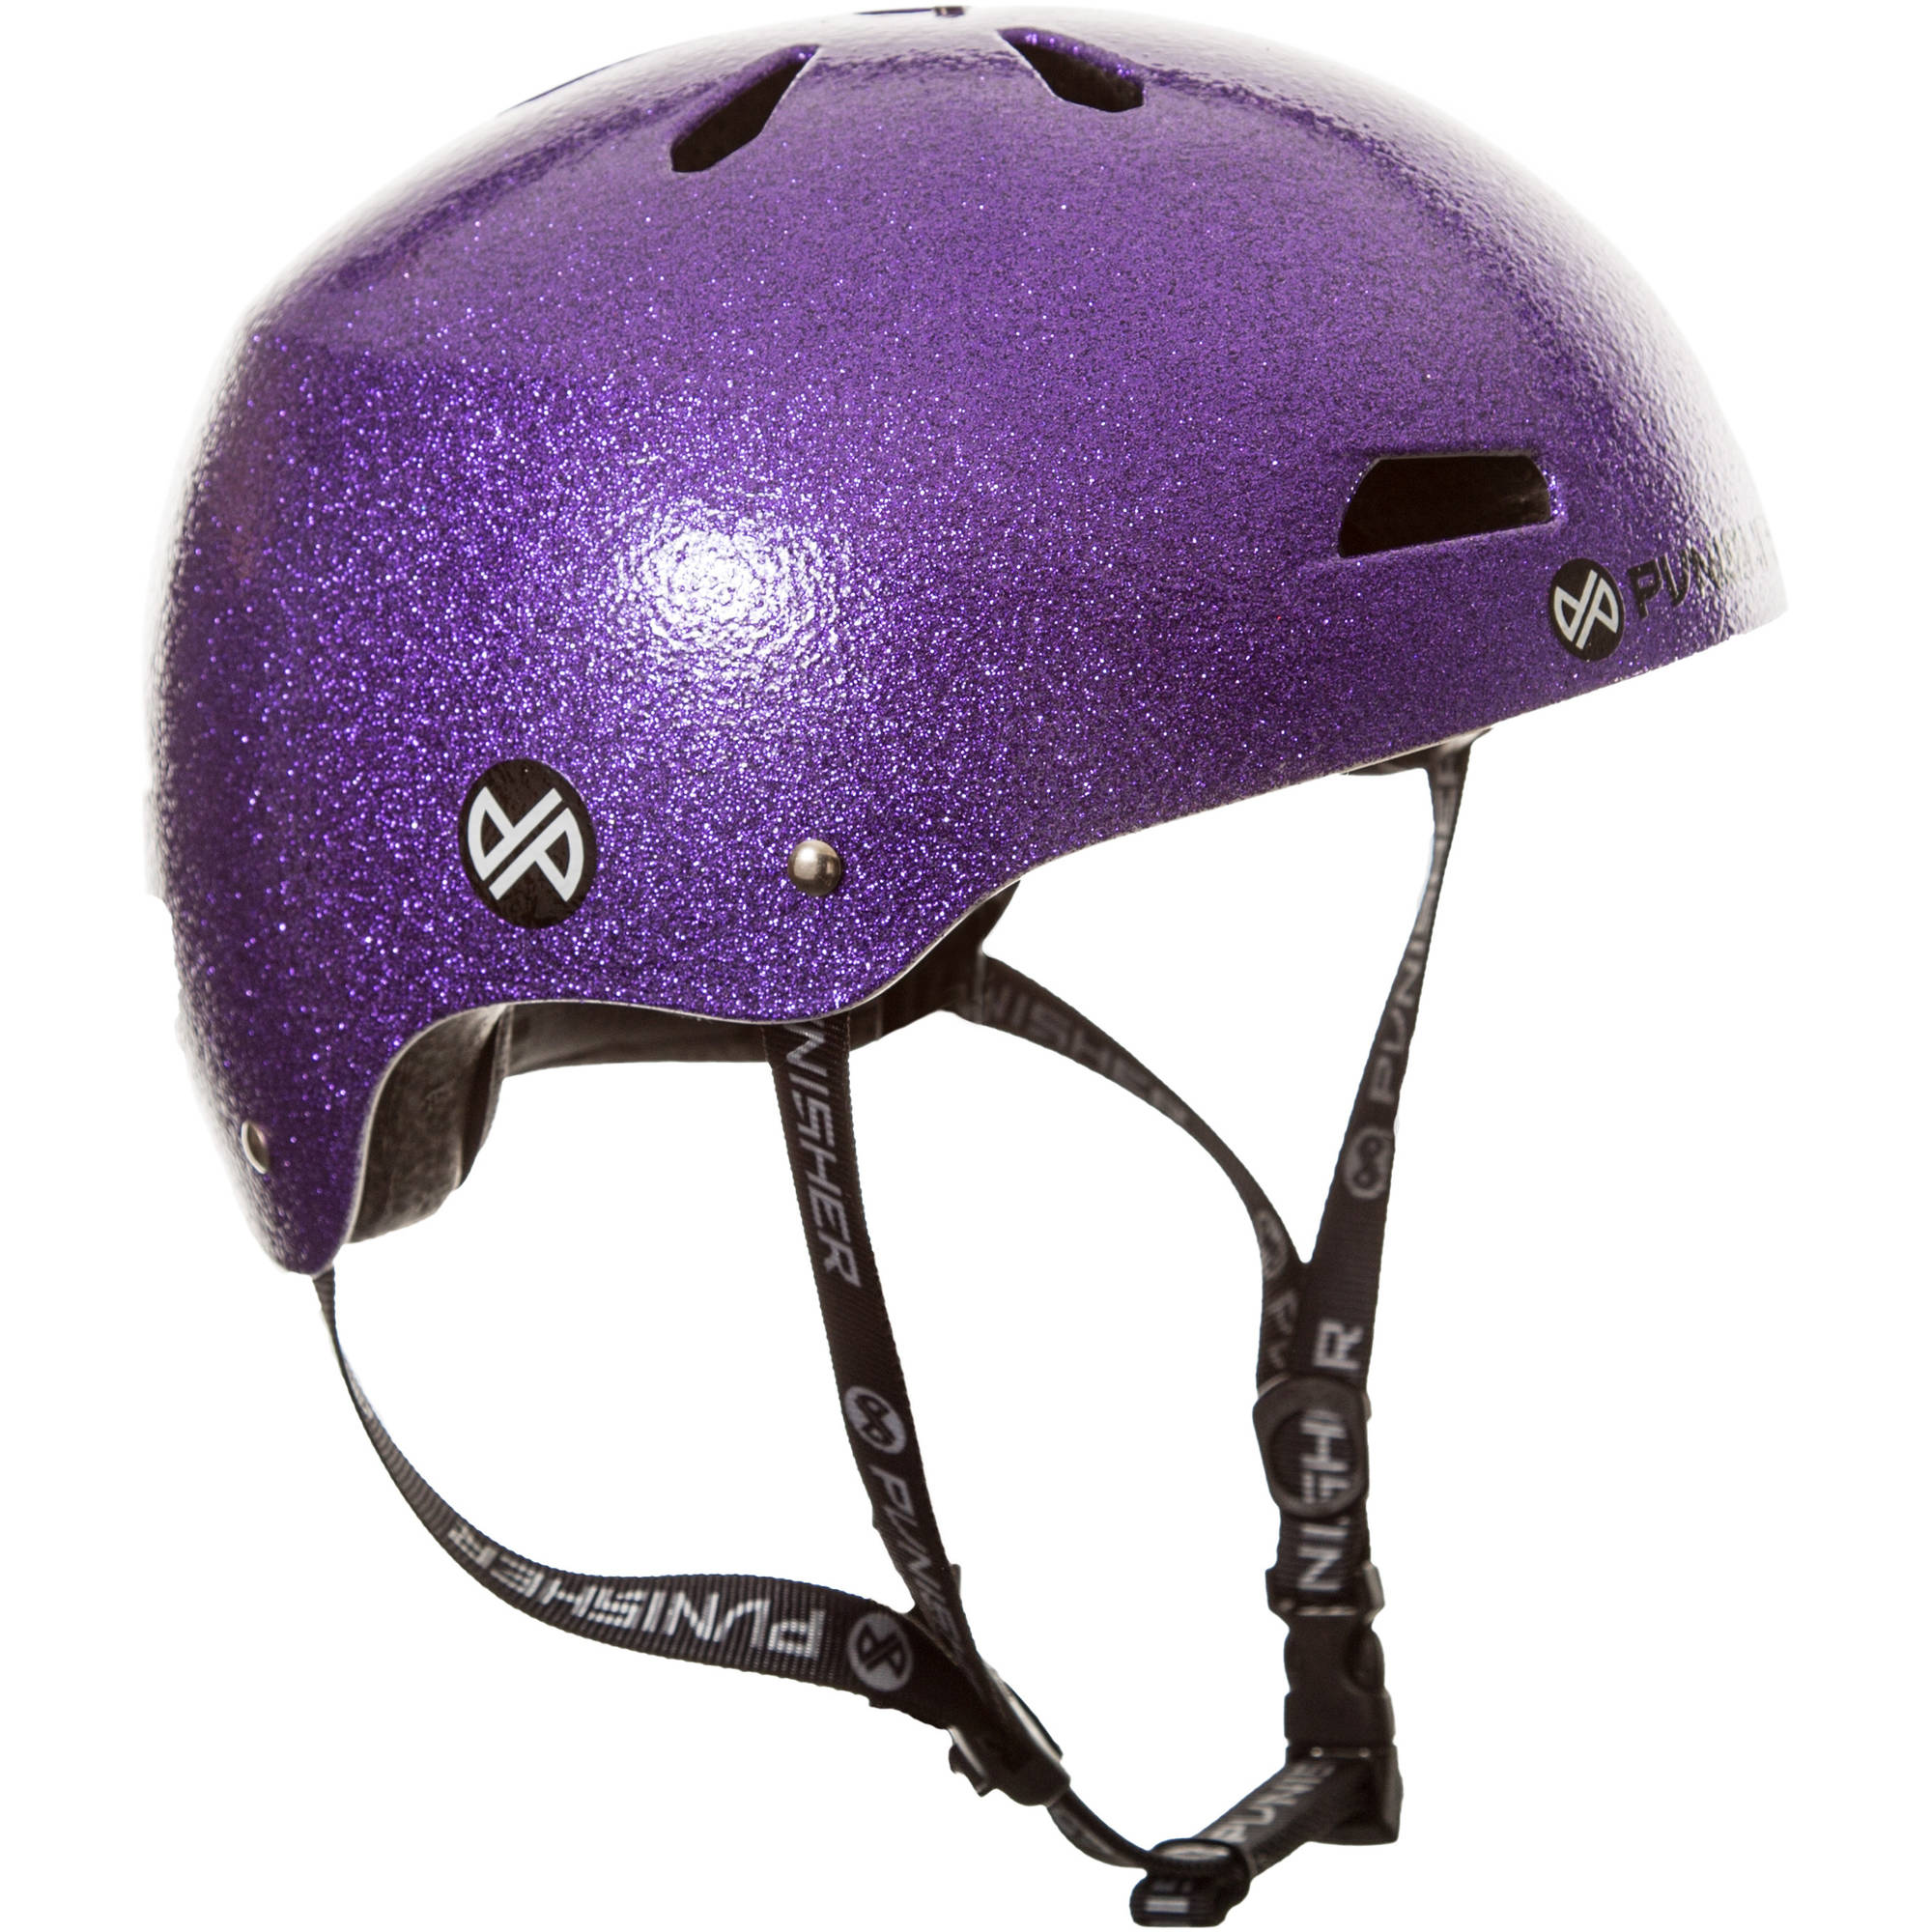 Punisher Skateboards Pro 13-Vent Purple Flake Dual Safety Certified BMX Bike and Skateboard Helmet, Youth Medium/Large